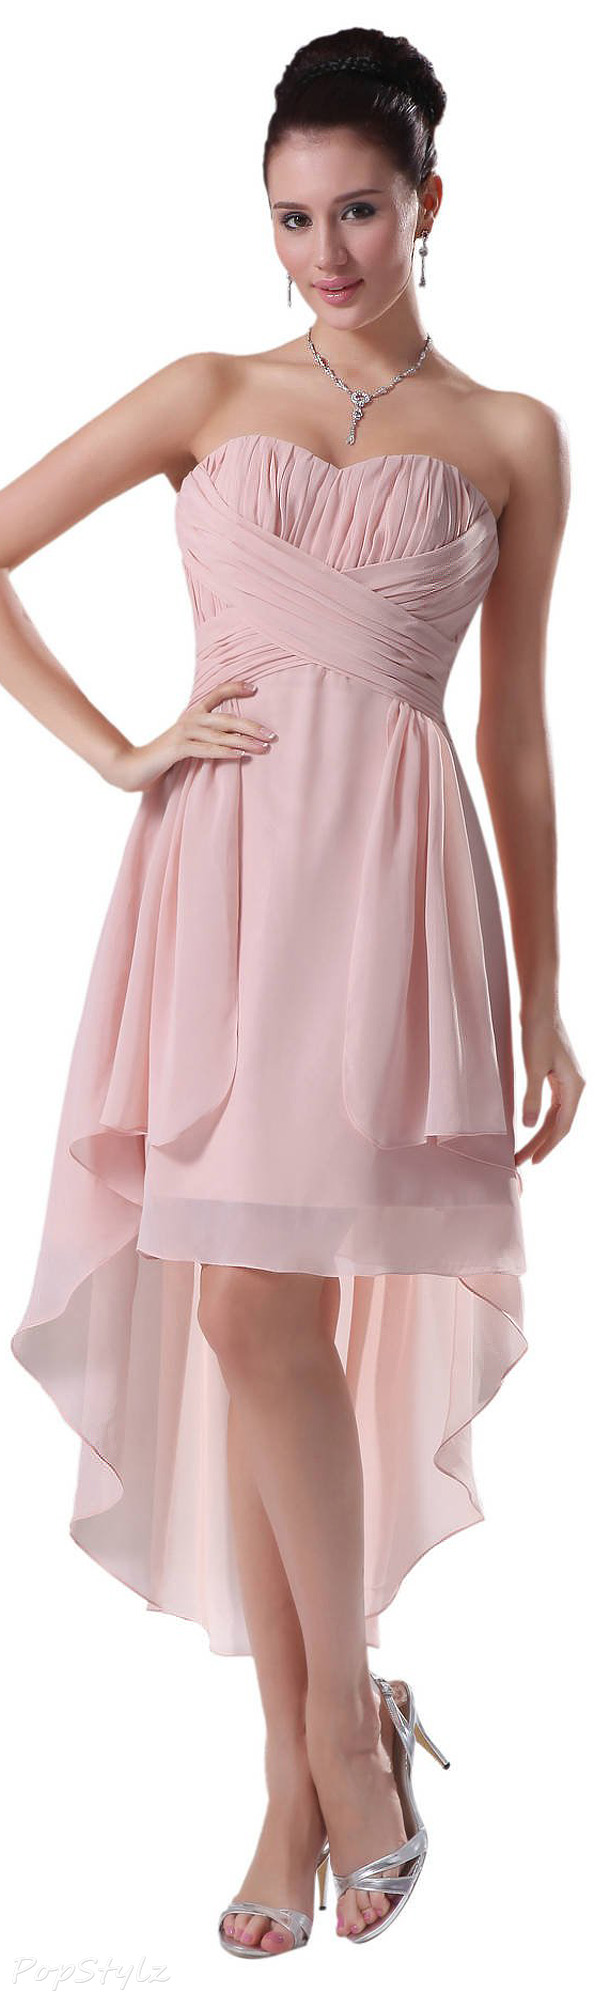 Diyouth Sweetheart Strapless High Low Evening Gown